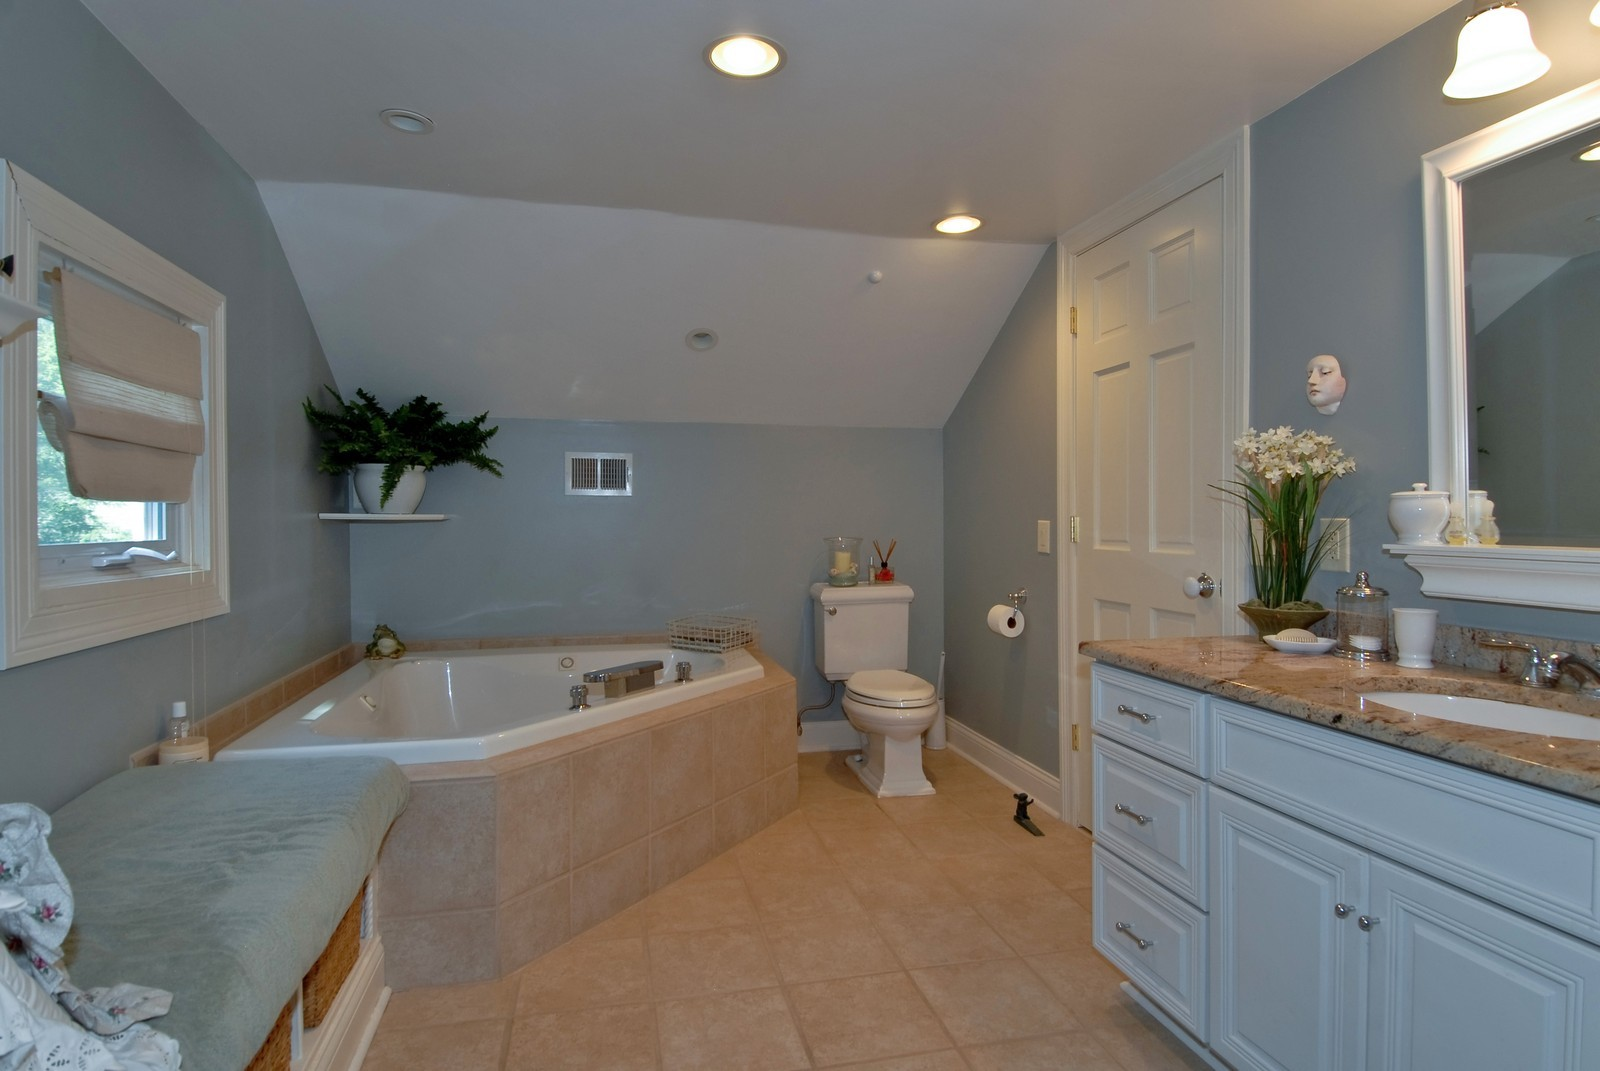 Real Estate Photography - 1031 Pine St, St Charles, IL, 60174 - Master Bathroom